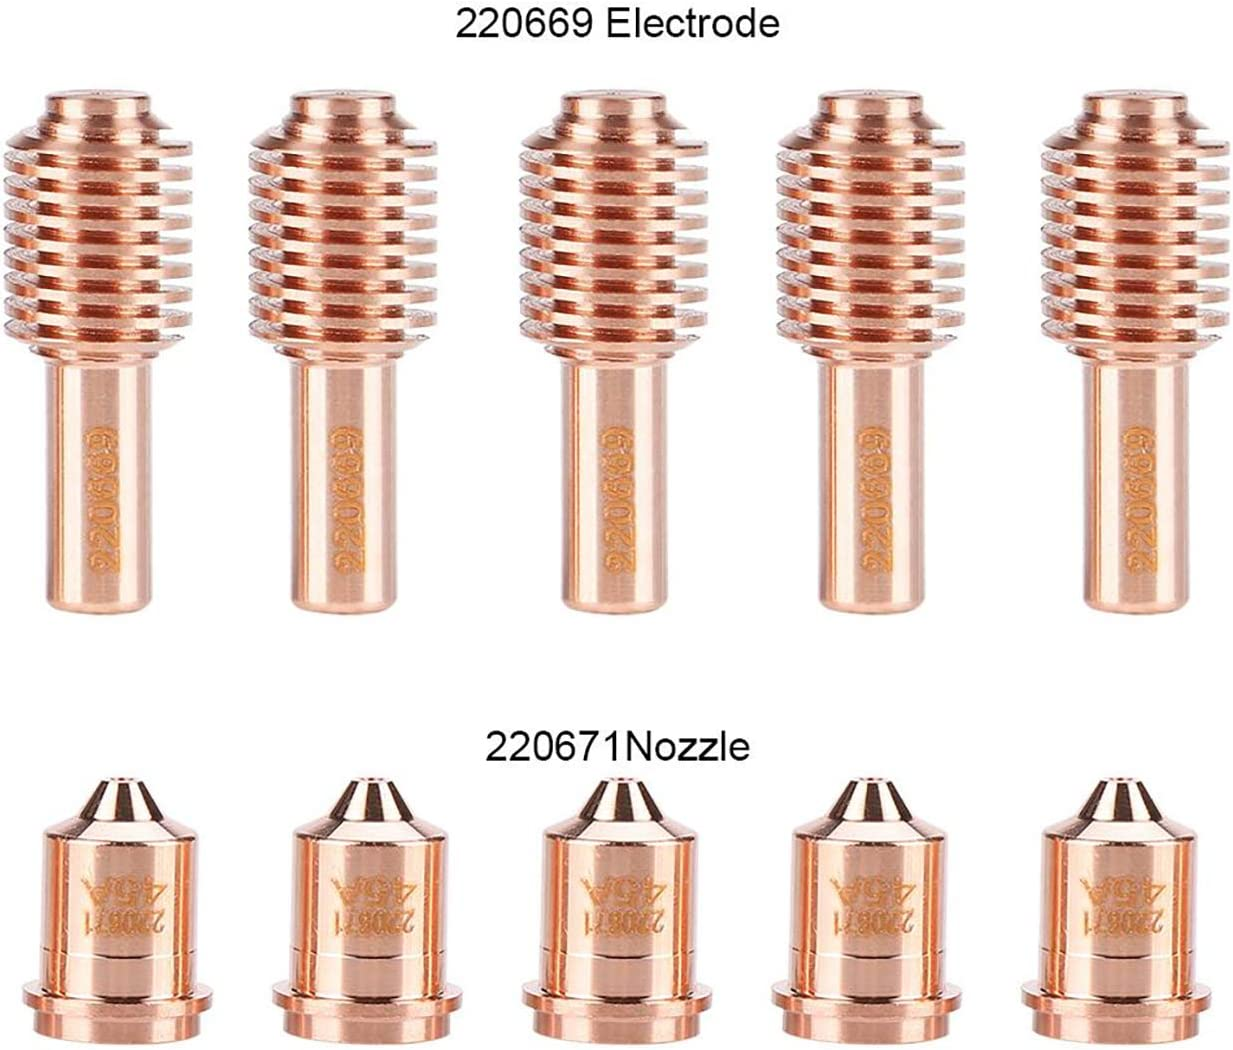 5pcs Electrode and Nozzle Tips Plasma Torch Consumable for MAX45 cutting machine 220669 220671